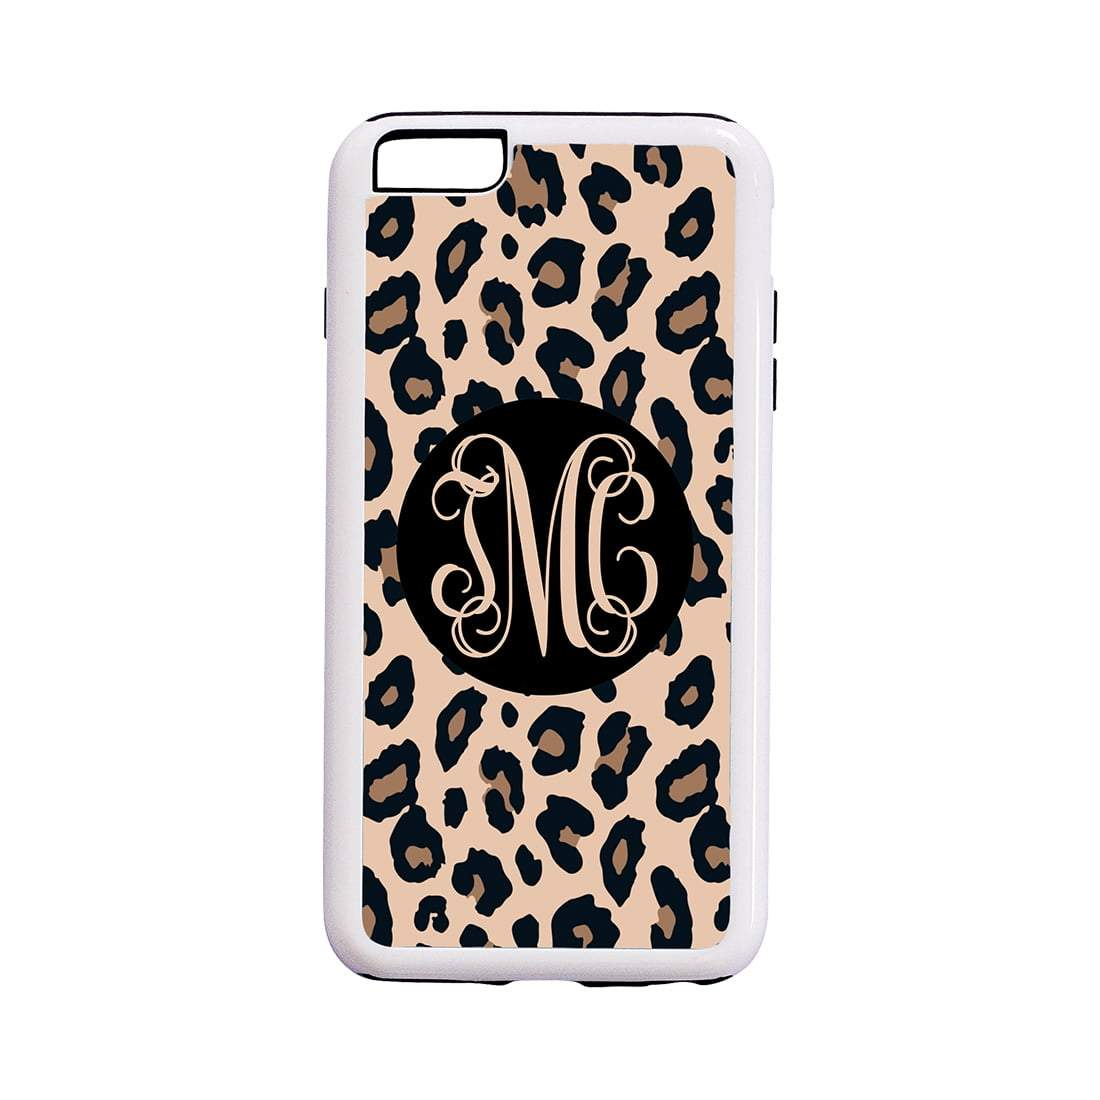 Leopard with Black iPhone 6/6S Plus Phone Case